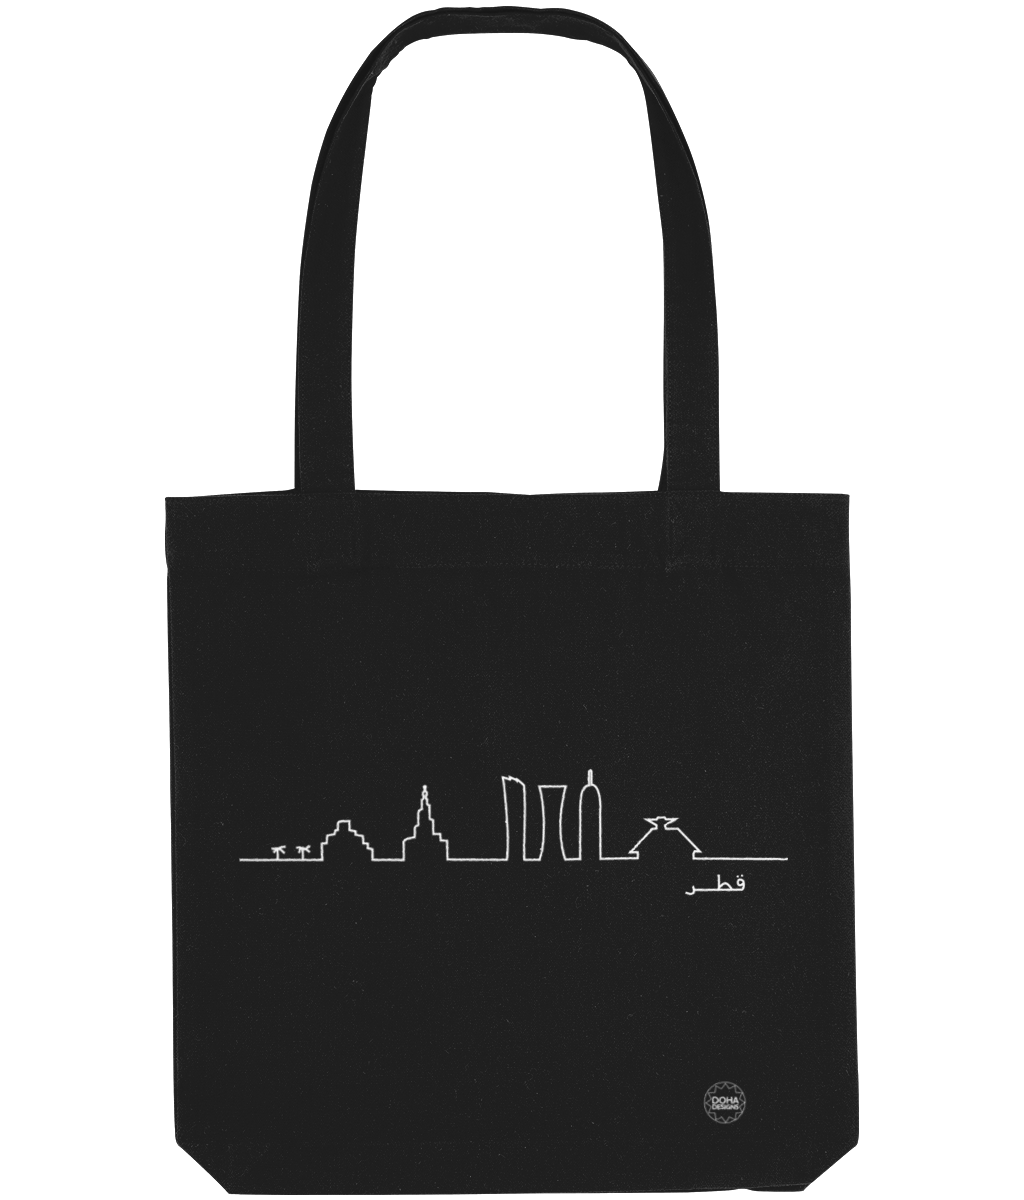 Skyline Bag in Black